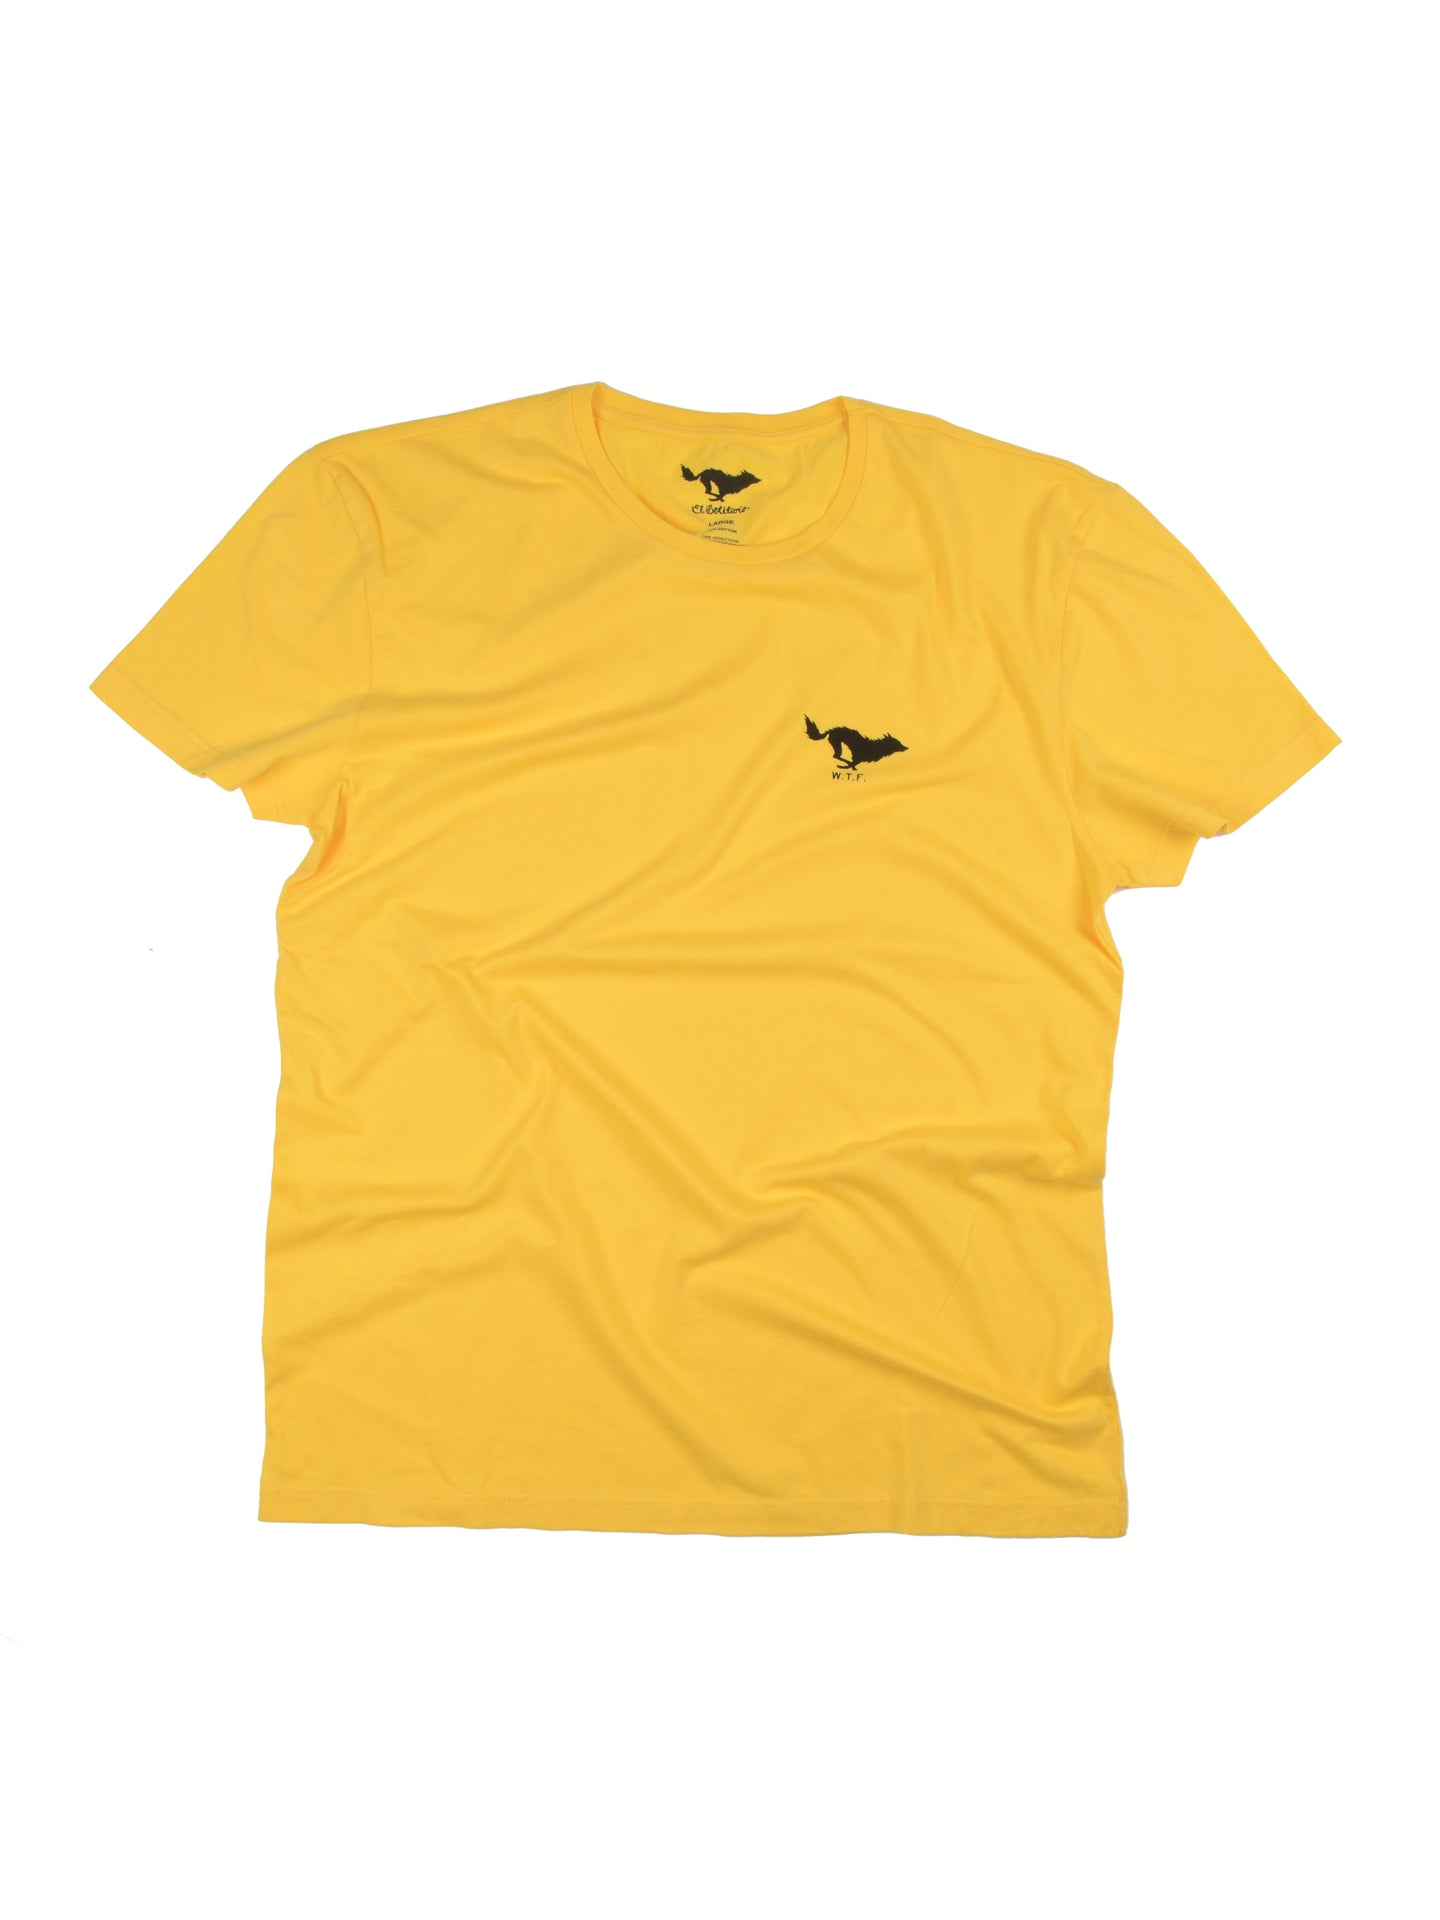 El Solitario Basic Yellow T-Shirt. Front